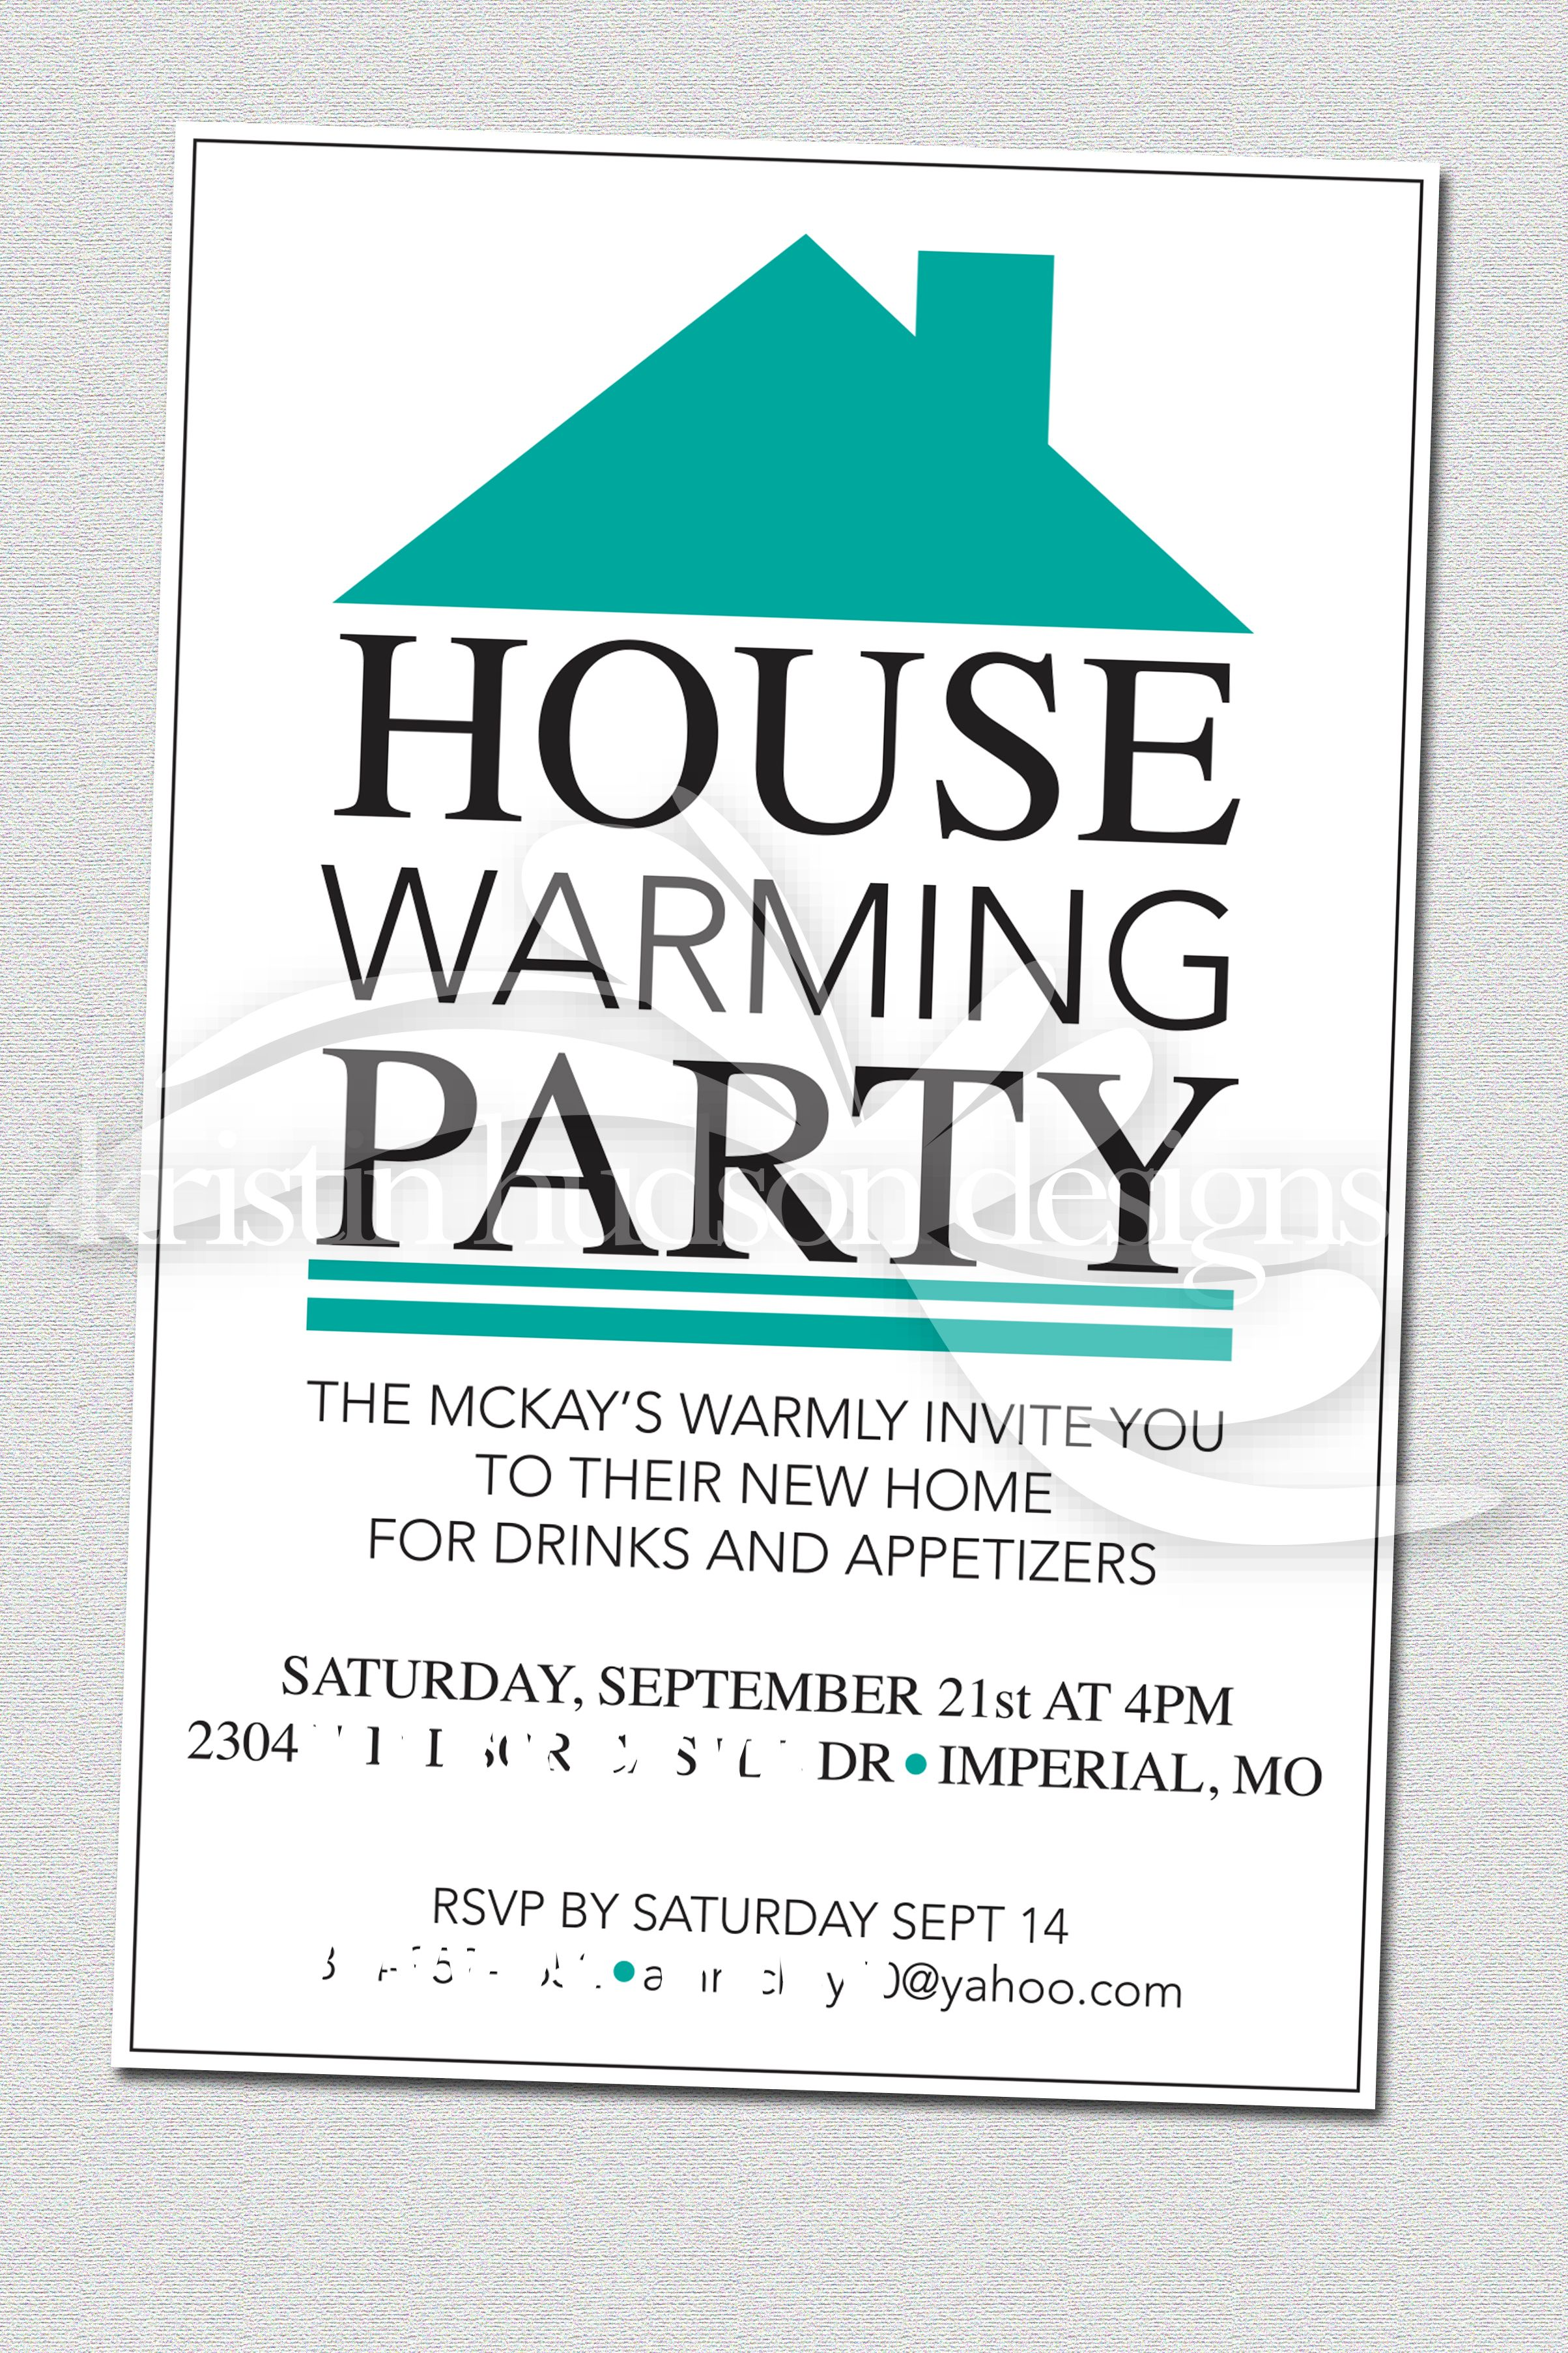 Housewarming invitation template incredible with india house warming idea and also best gender reveal images on pinterest pregnancy baby shower rh